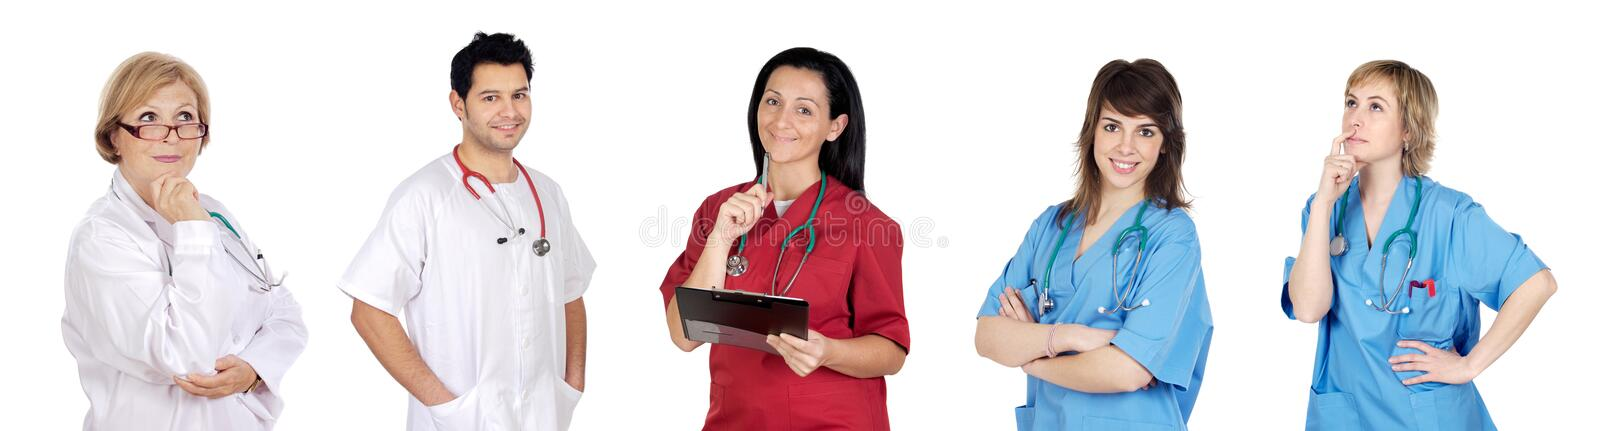 Medical team with pensive face. On a over white background stock image